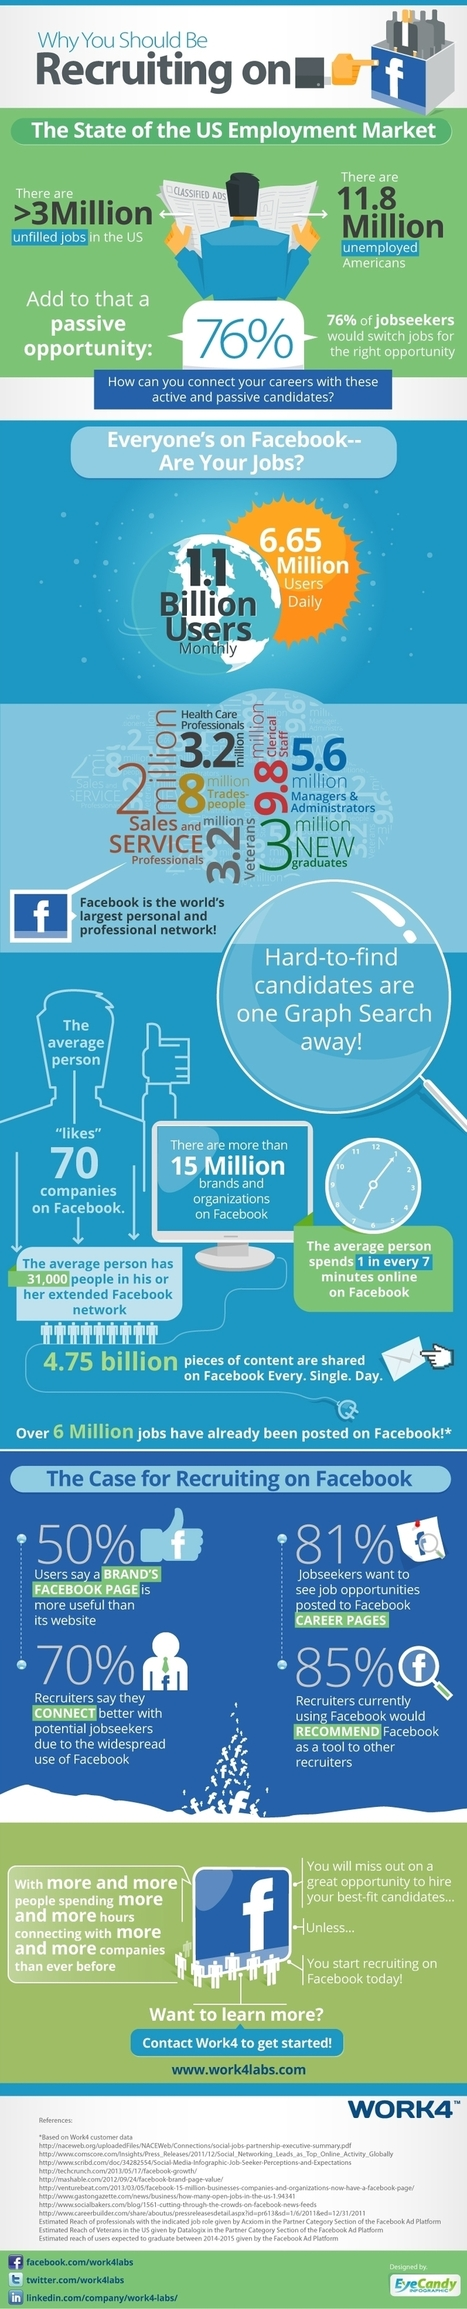 Why You Should Recruit on Facebook [INFOGRAPHIC] | Recruiting from Mobile | Scoop.it